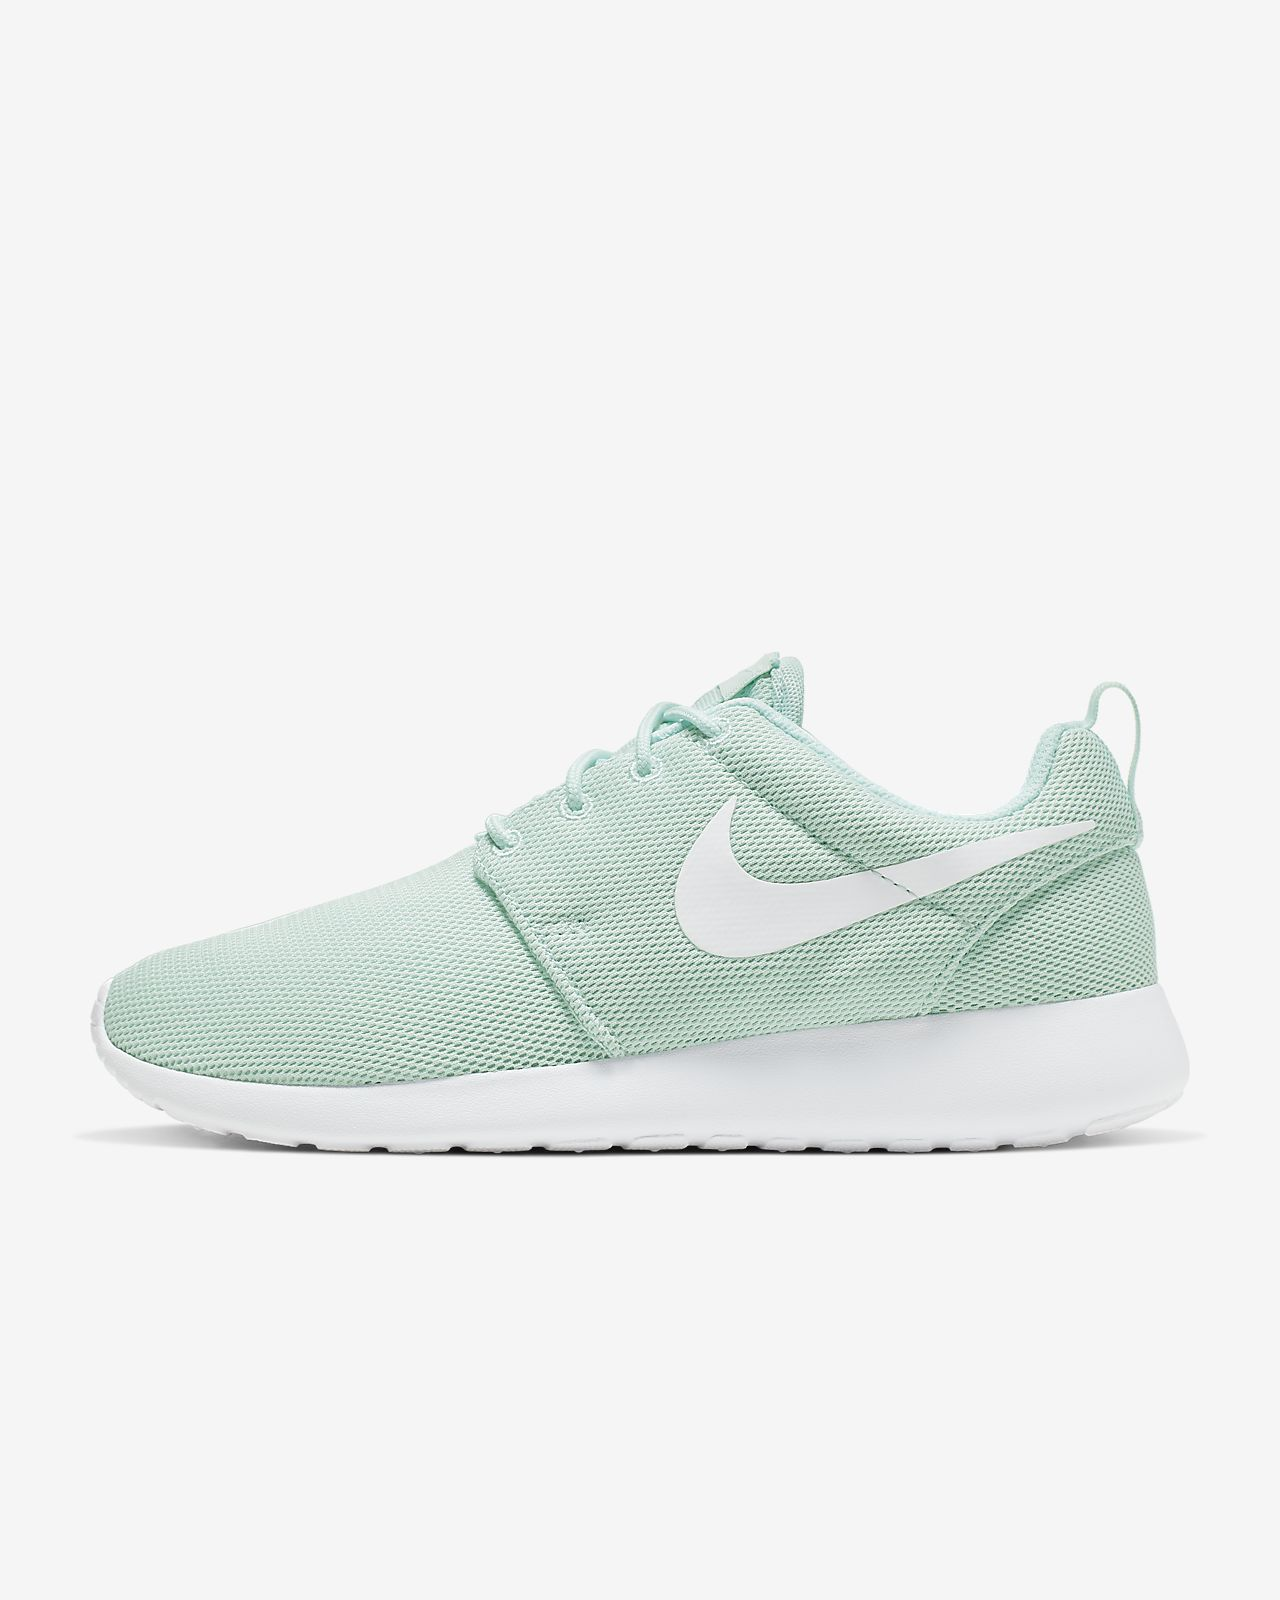 premium selection b3638 e787b ... Nike Roshe One Women s Shoe